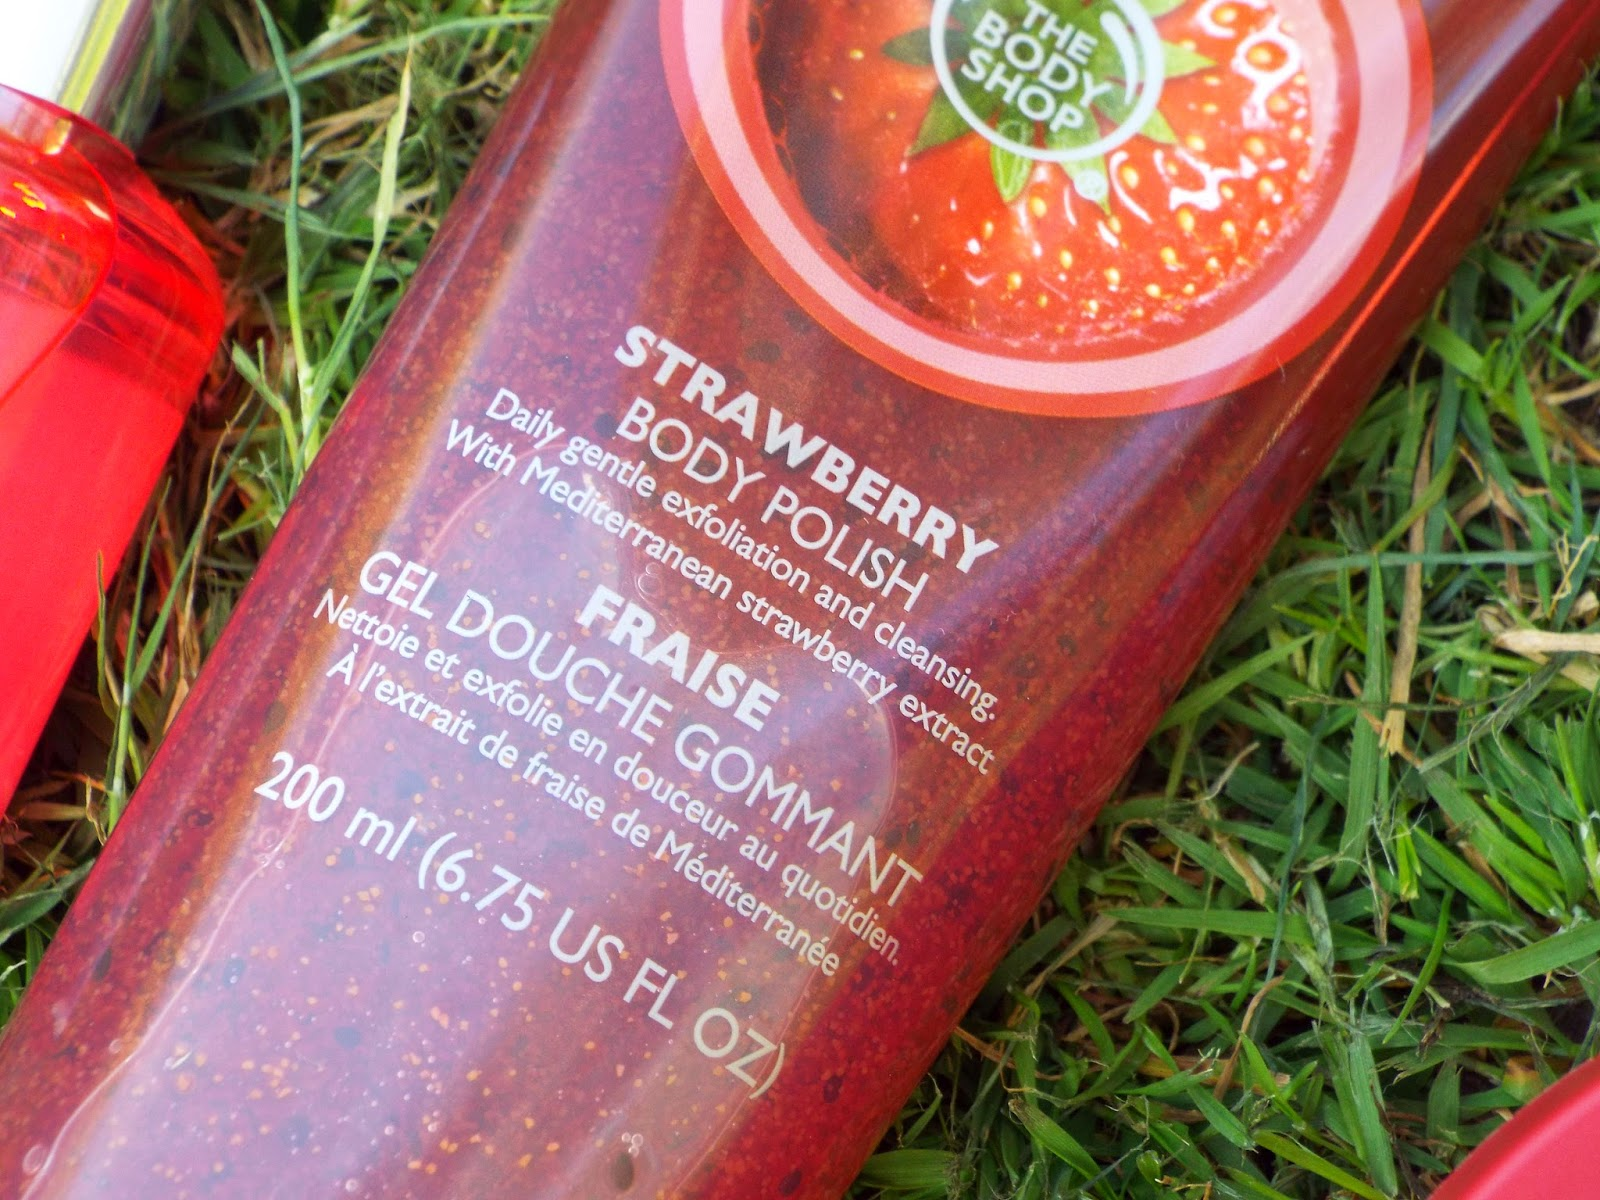 image of strawberry body polish from the body shop